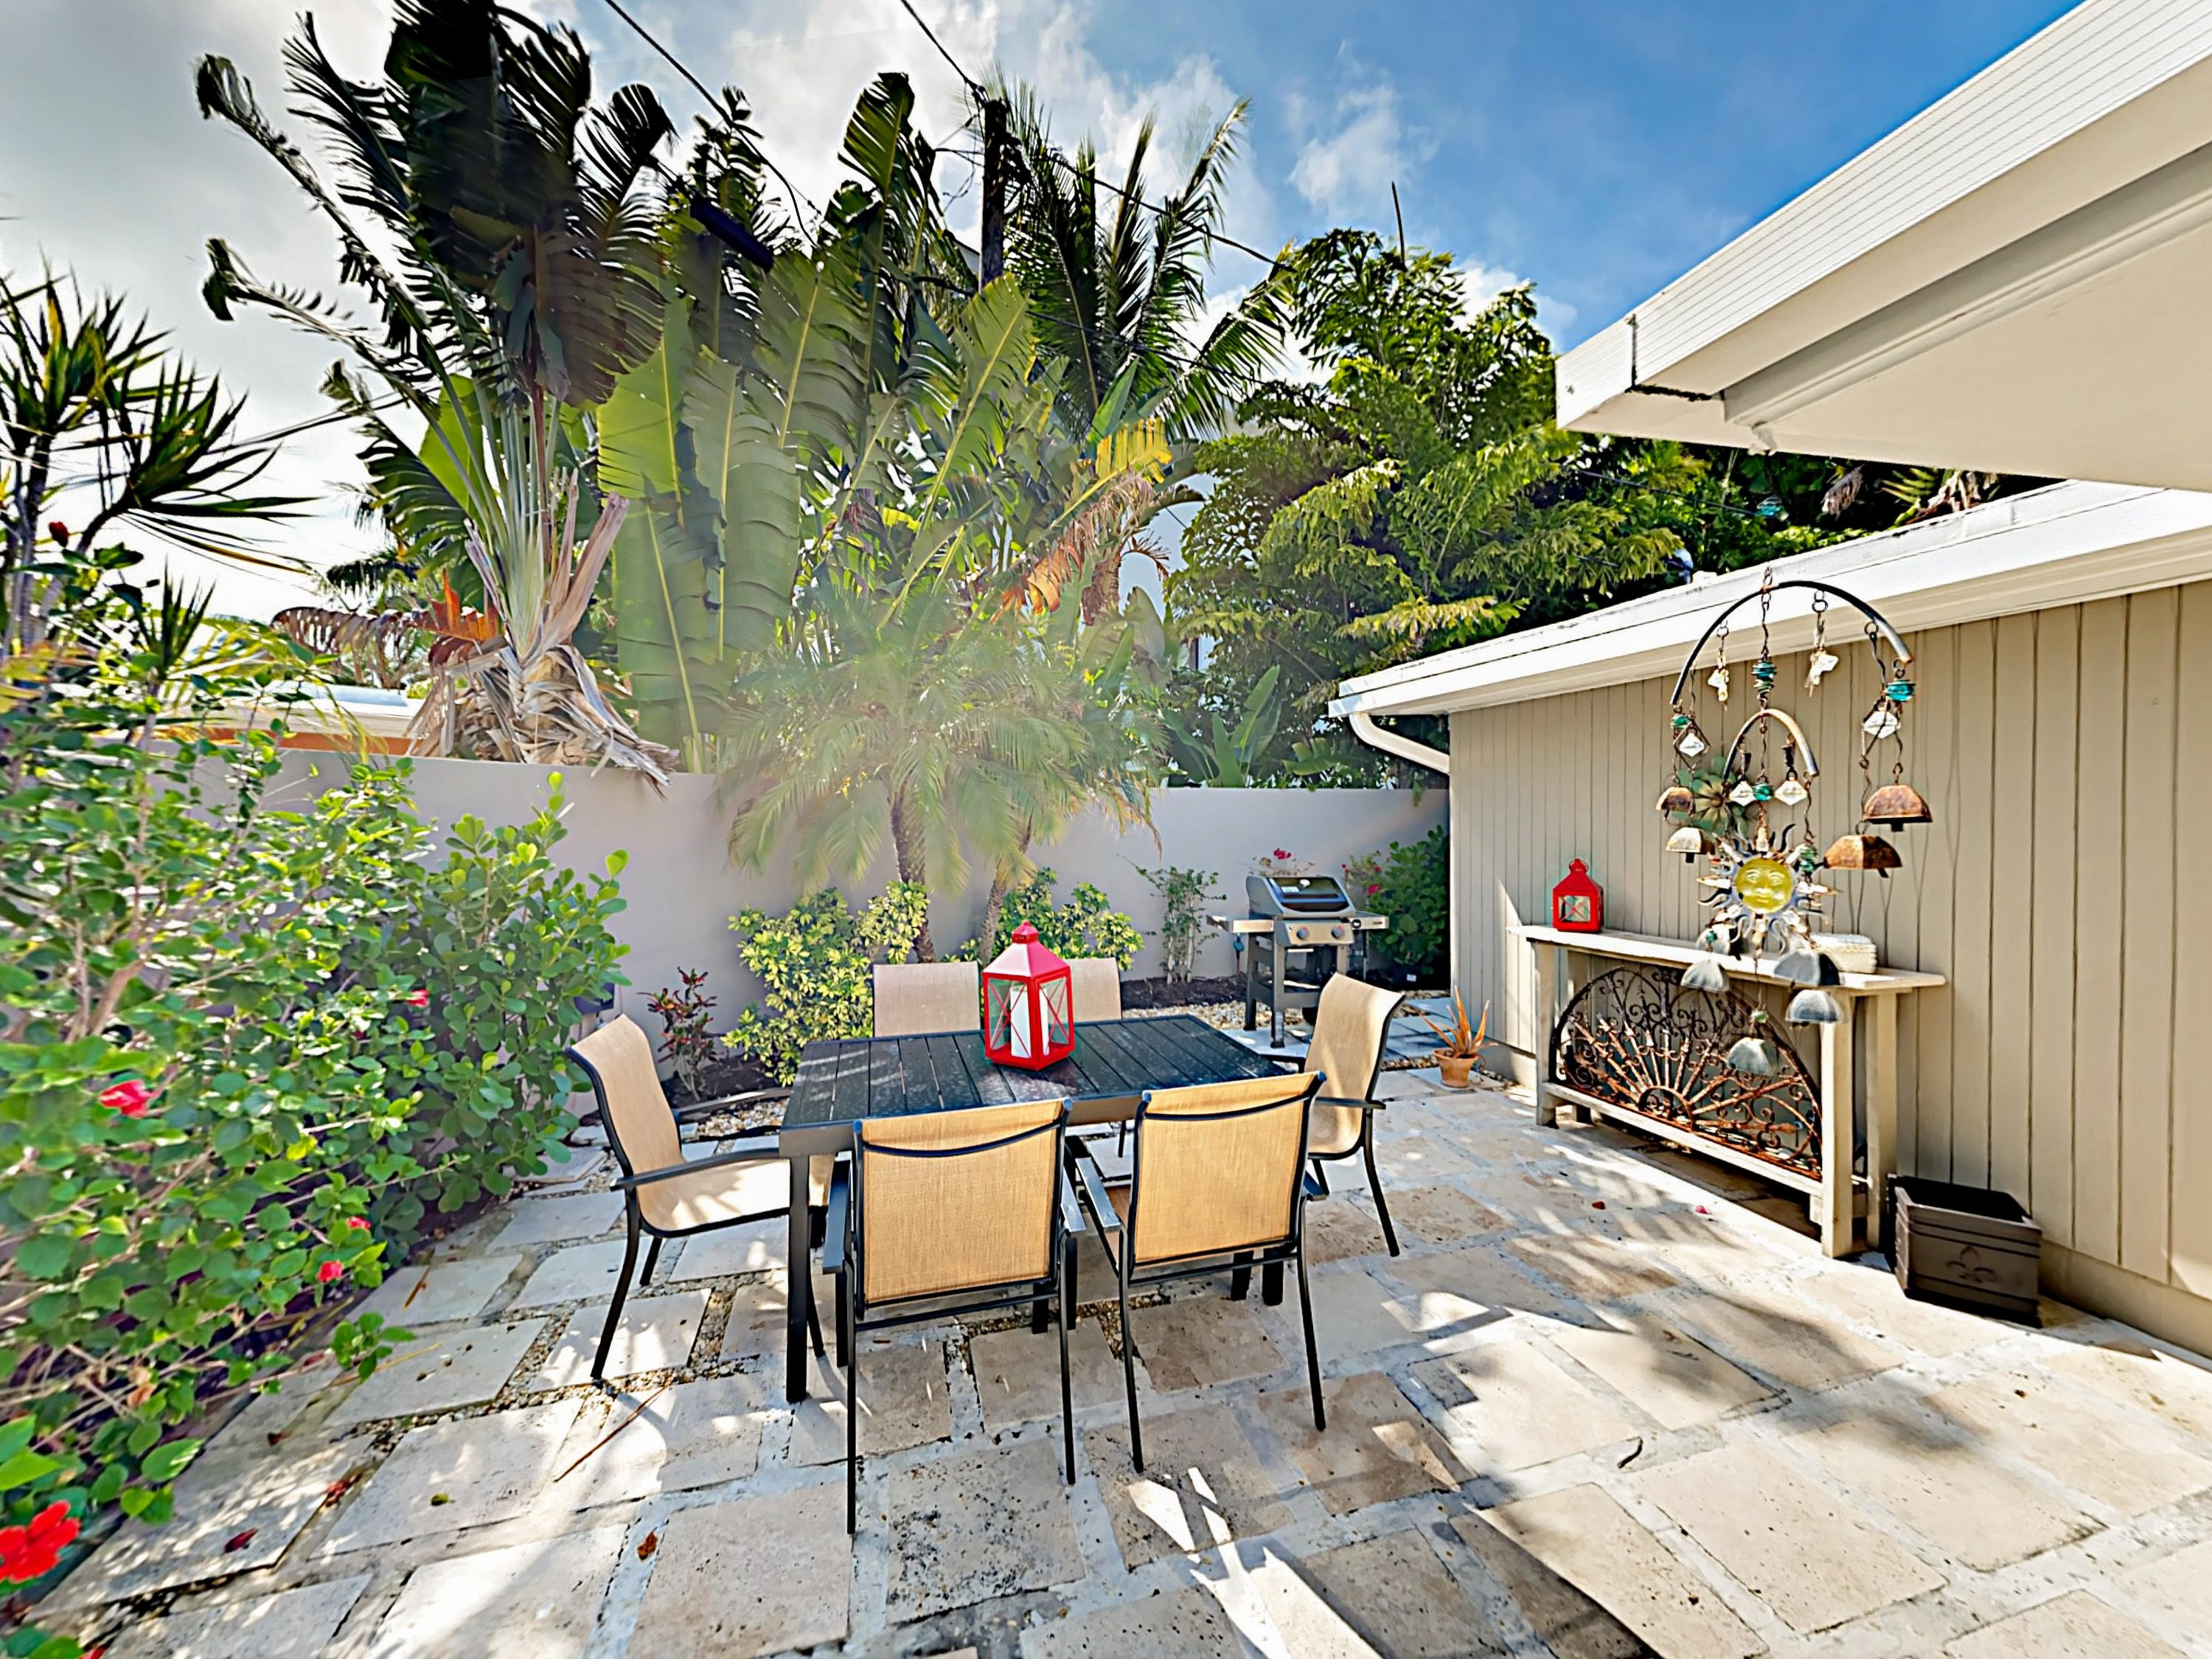 The backyard oasis offers outdoor seating for 6.